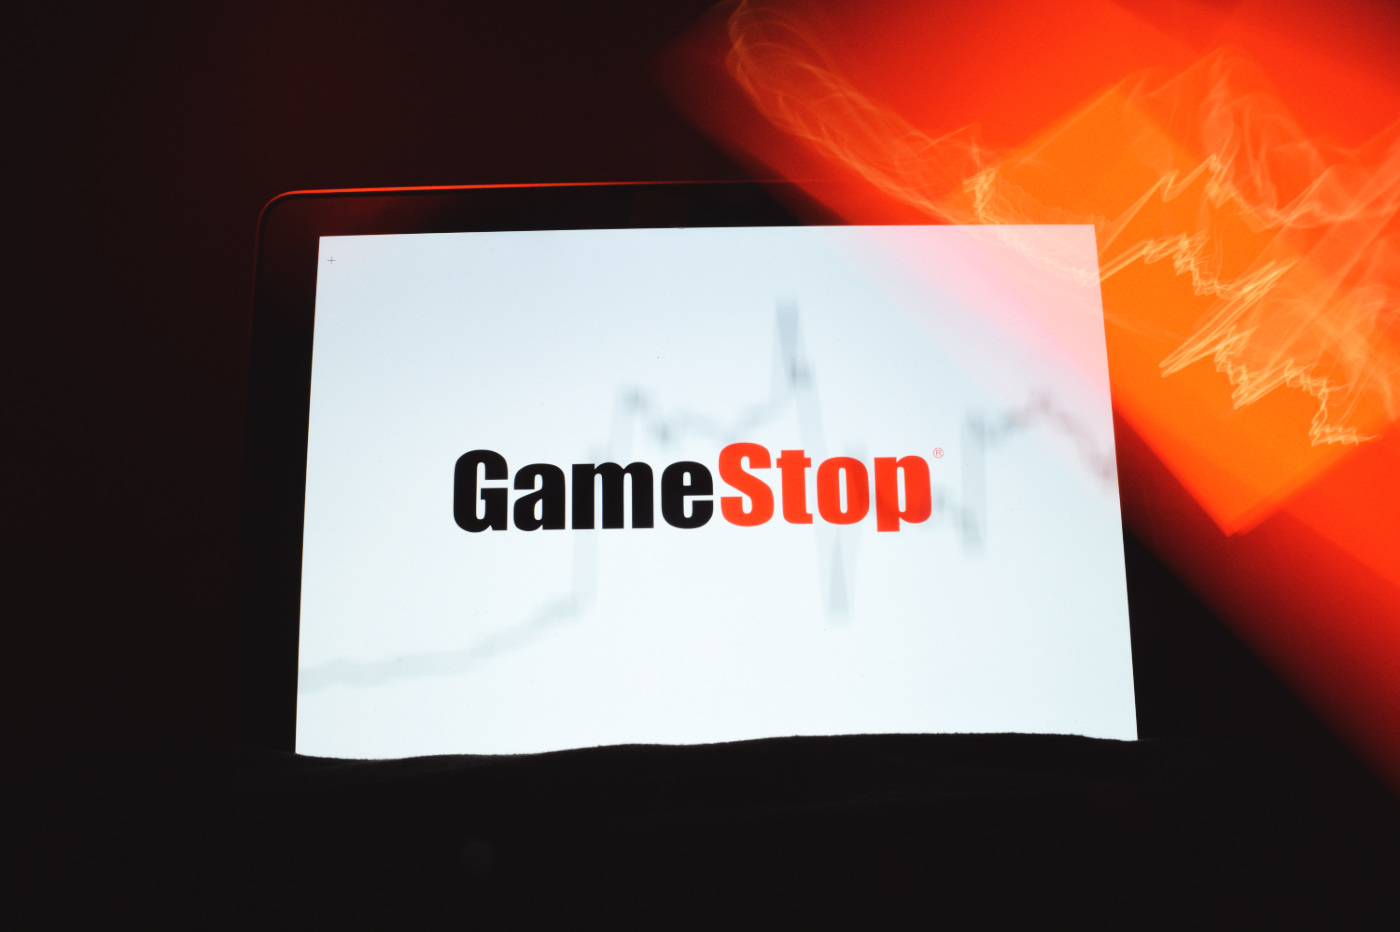 Affaire GameStop WallStreetBets